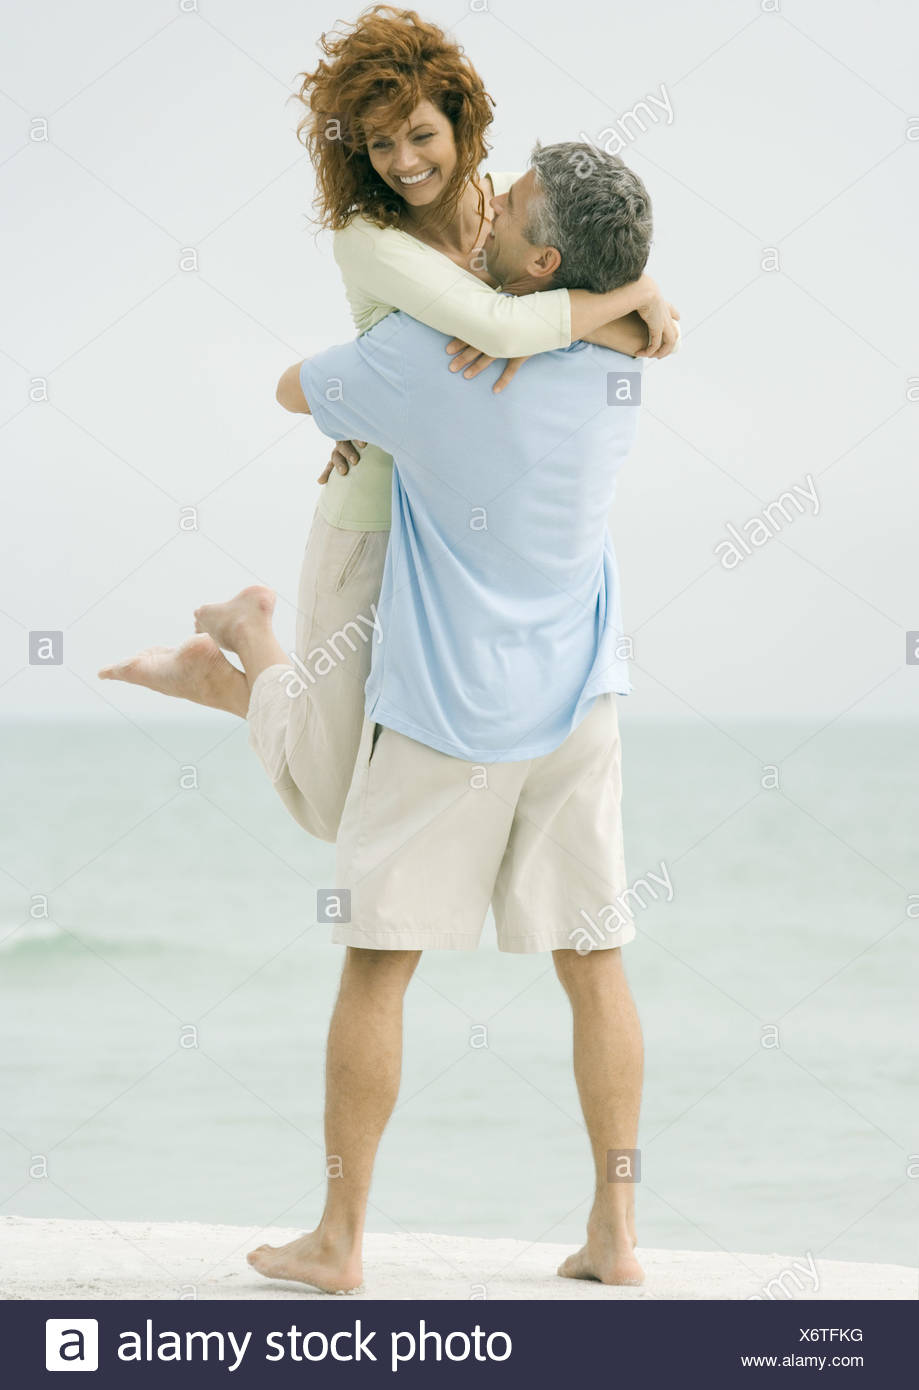 Mature woman picked up